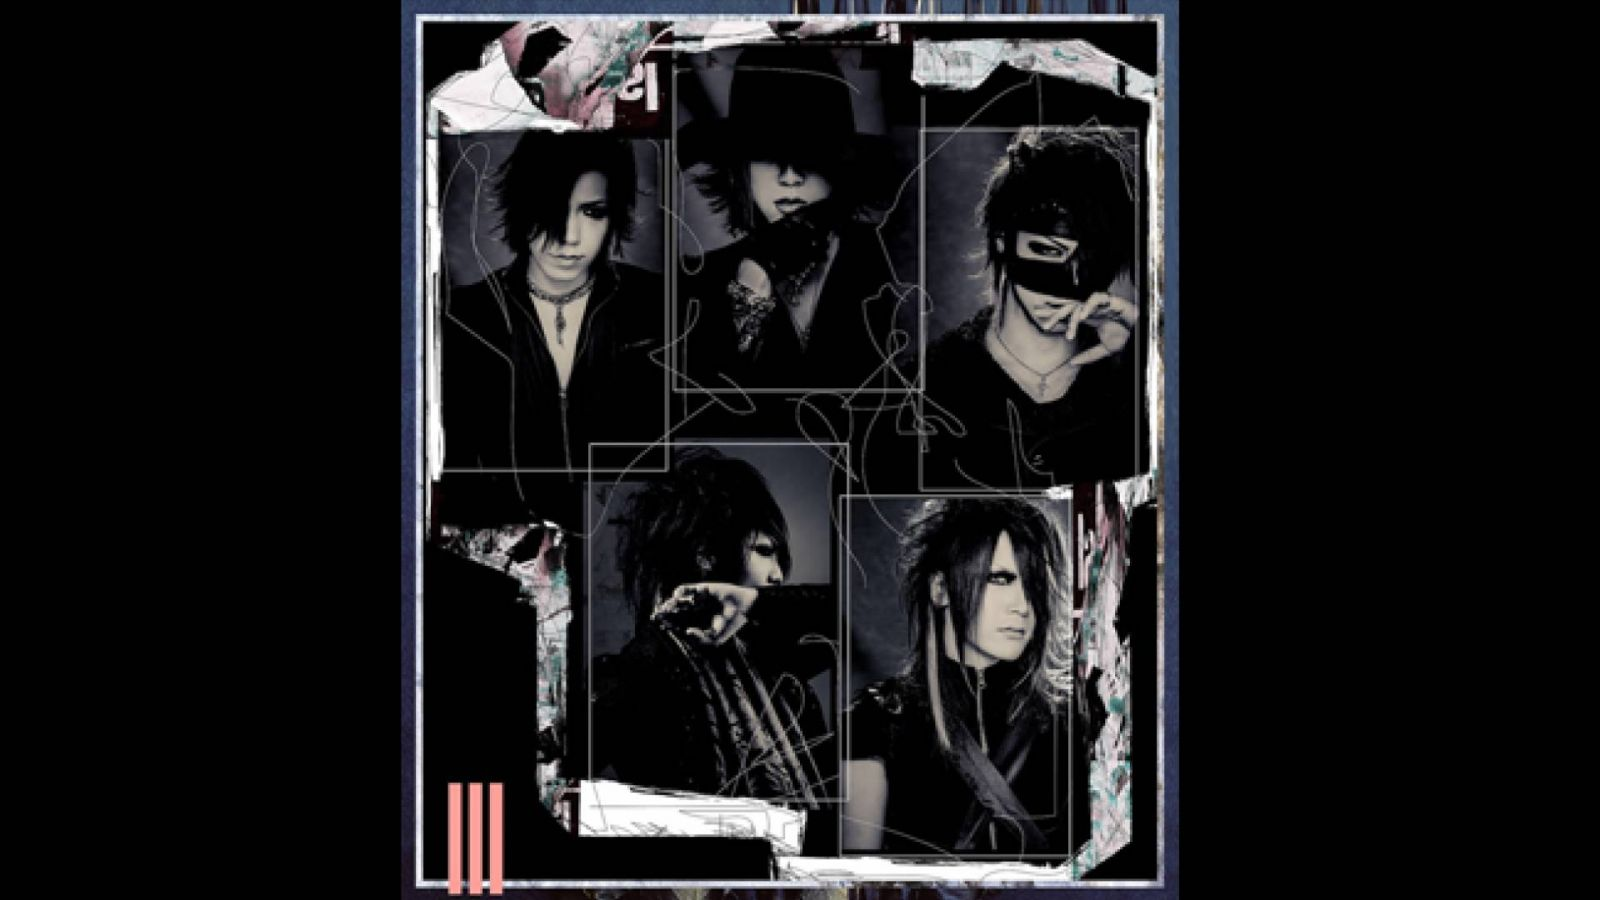 the GazettE to Digitally Release Concert Footage in 58 Countries, Launches VEVO Channel © PS COMPANY Co.,Ltd. All rights reserved.